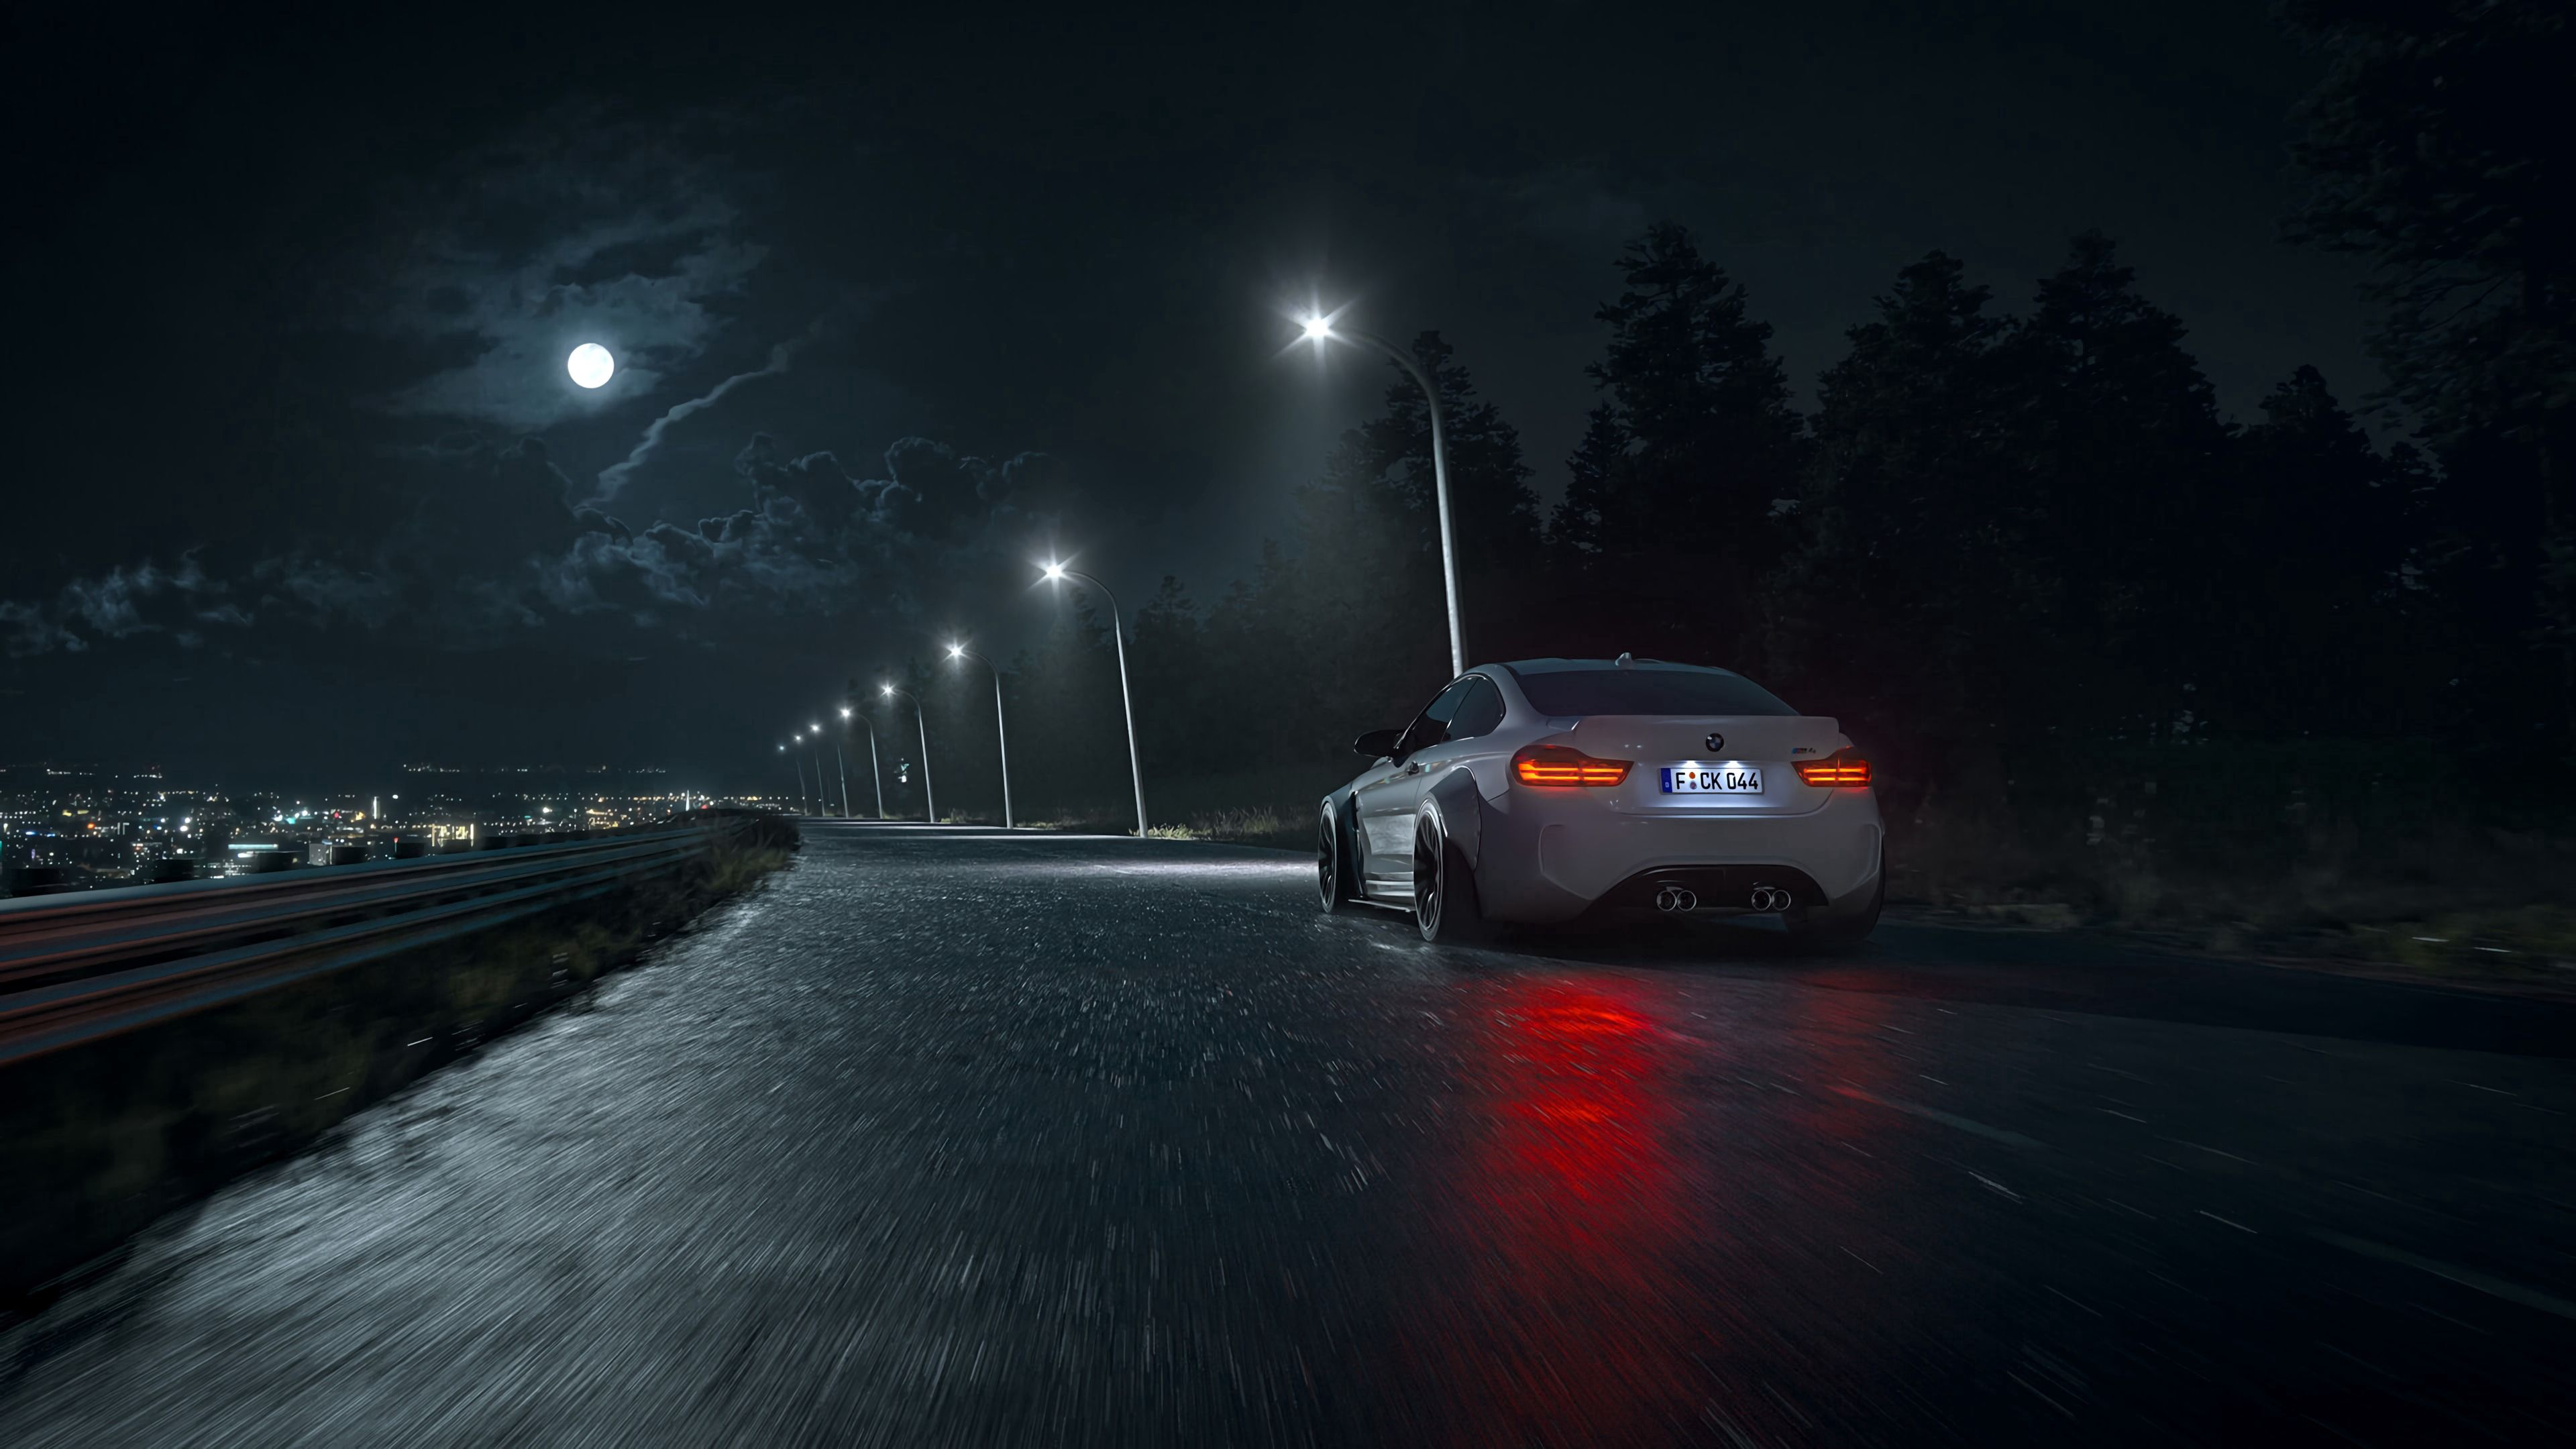 53223 Screensavers and Wallpapers Wet for phone. Download Night, Cars, Dark, Road, Wet, Car, Asphalt, Machine pictures for free